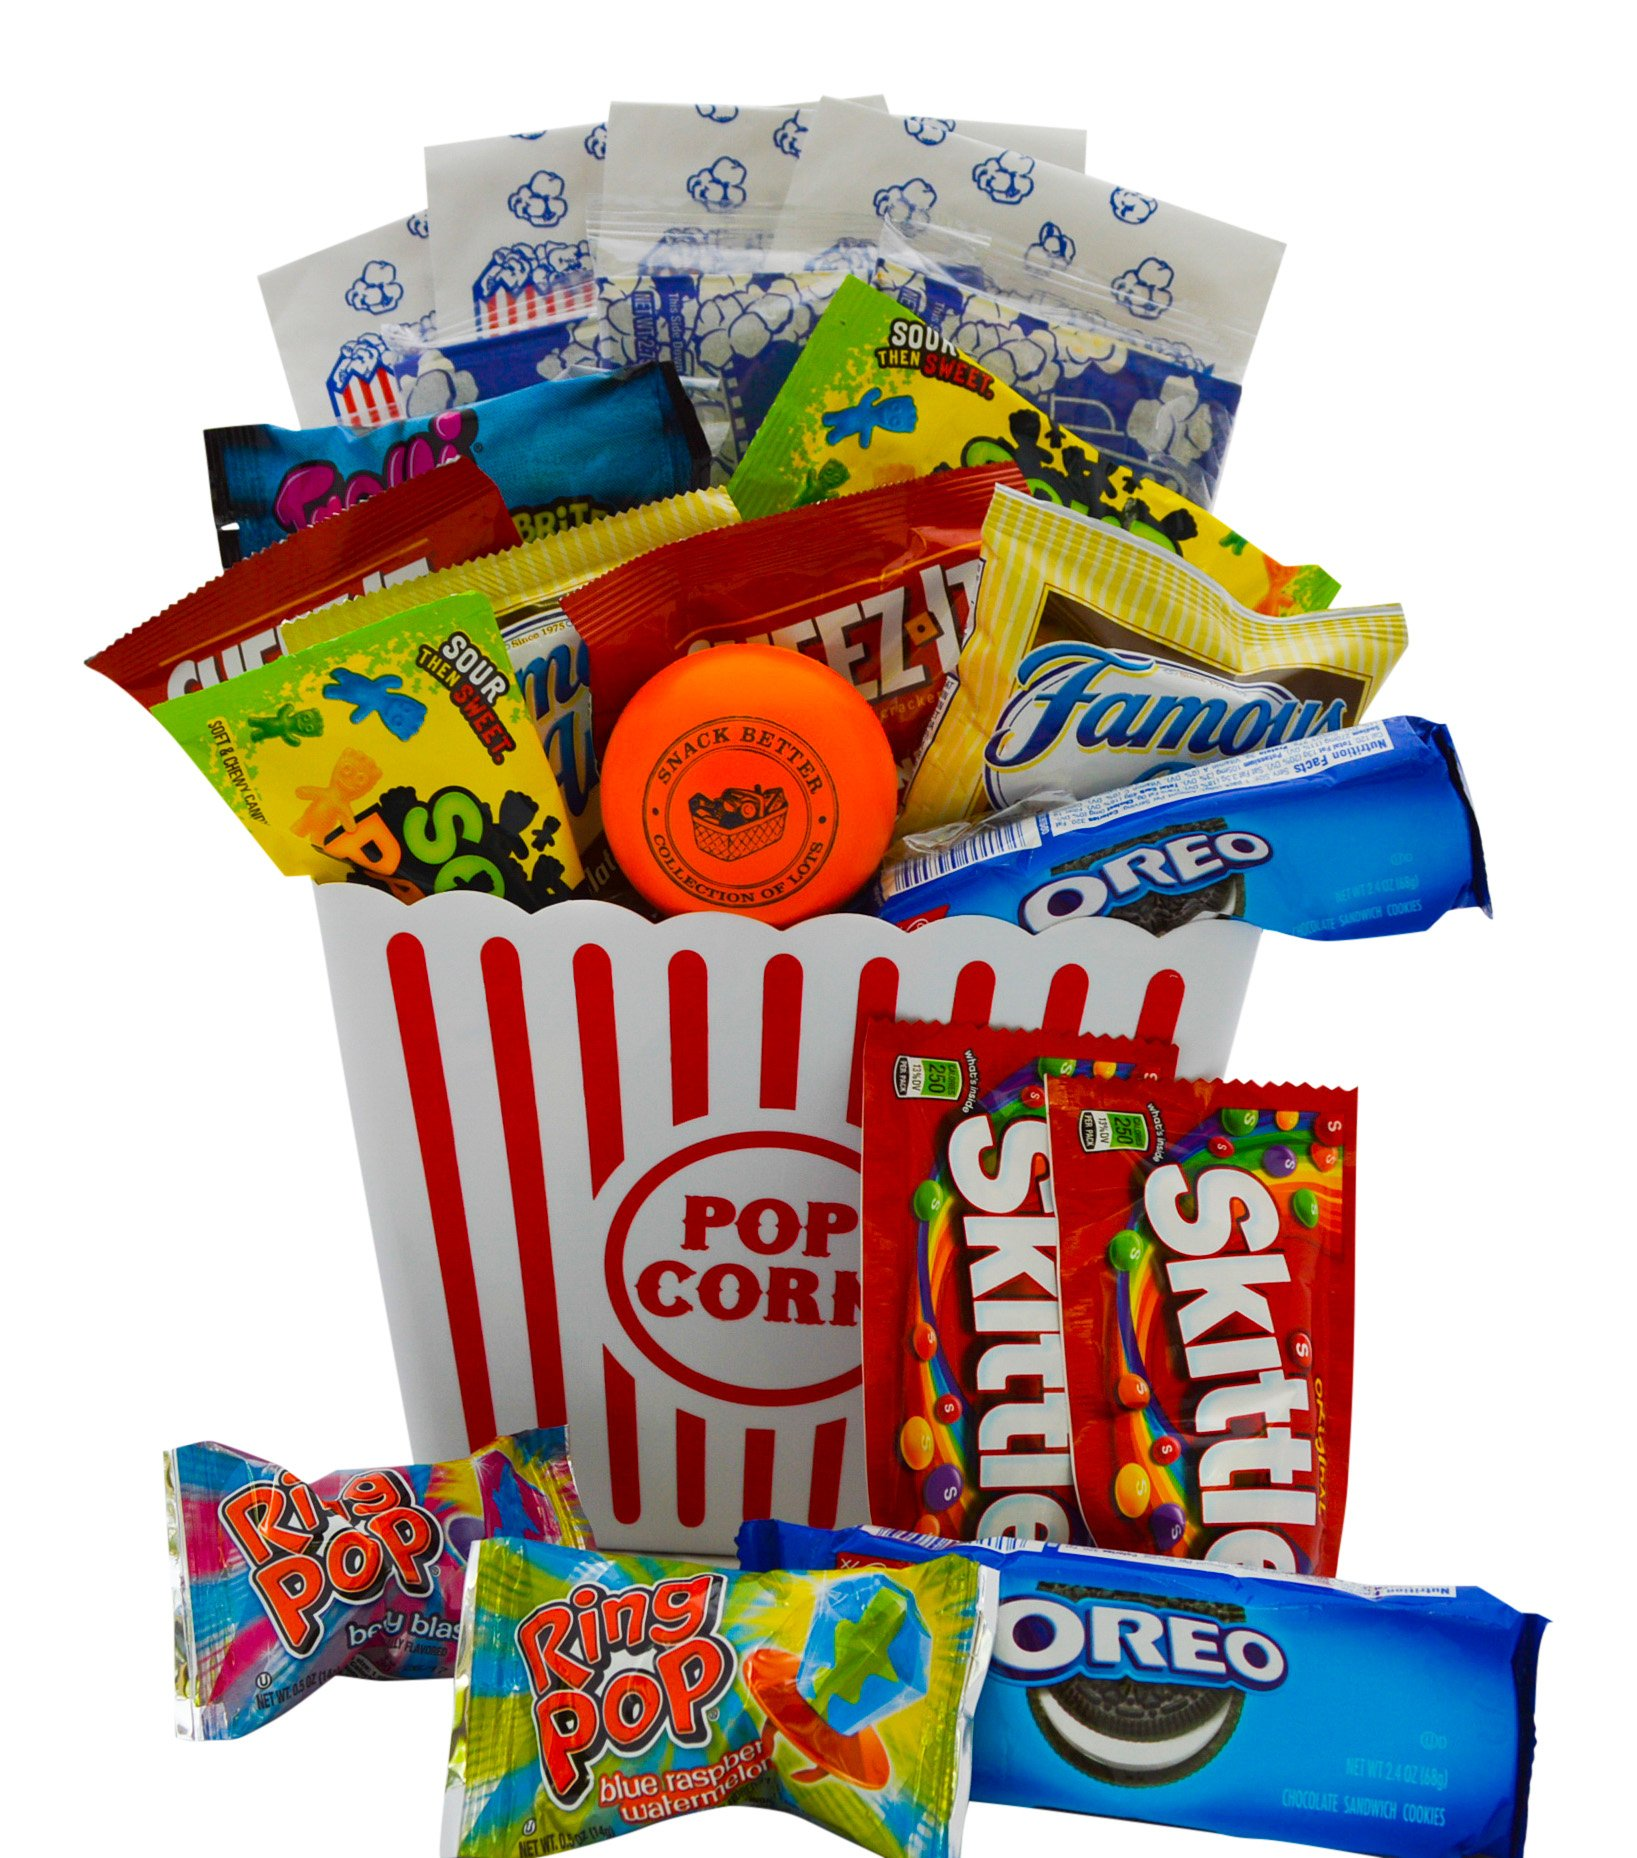 Ultimate Movie Night Gift Bundle Care Package, Easter Basket, Christmas Present, Valentines Day with Popcorn, Candy, Cookies Plus Snack Better Stress Ball for Entire Family! by Snack Better